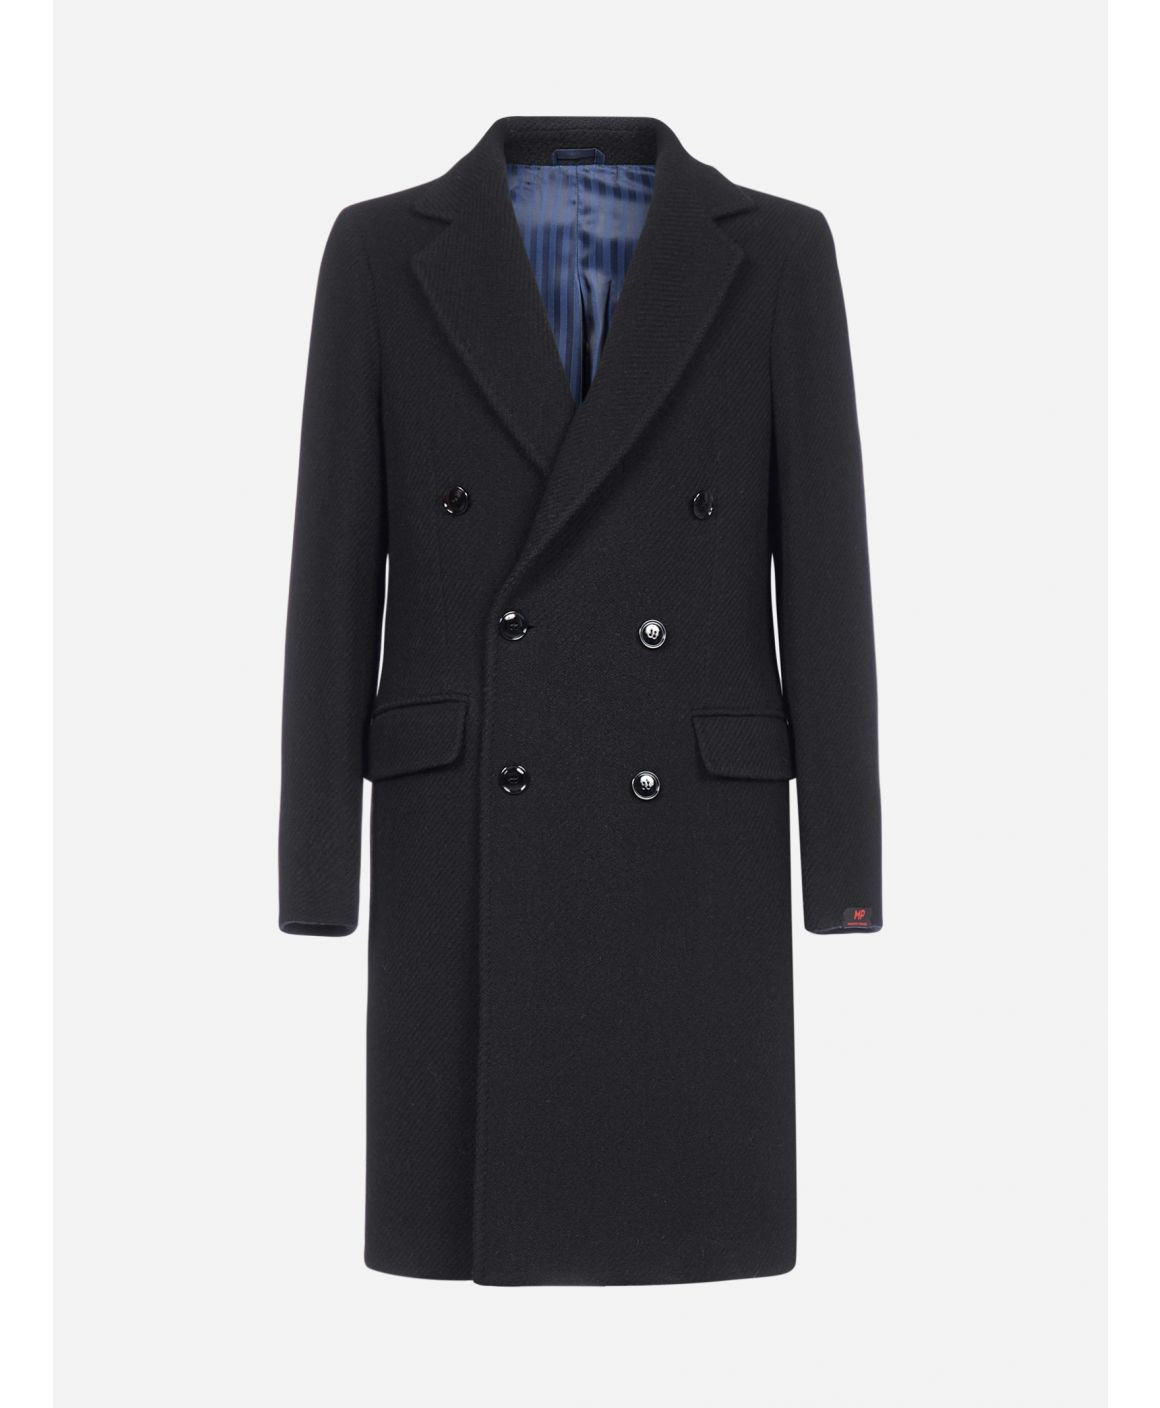 Roger double-breasted virgin wool coat